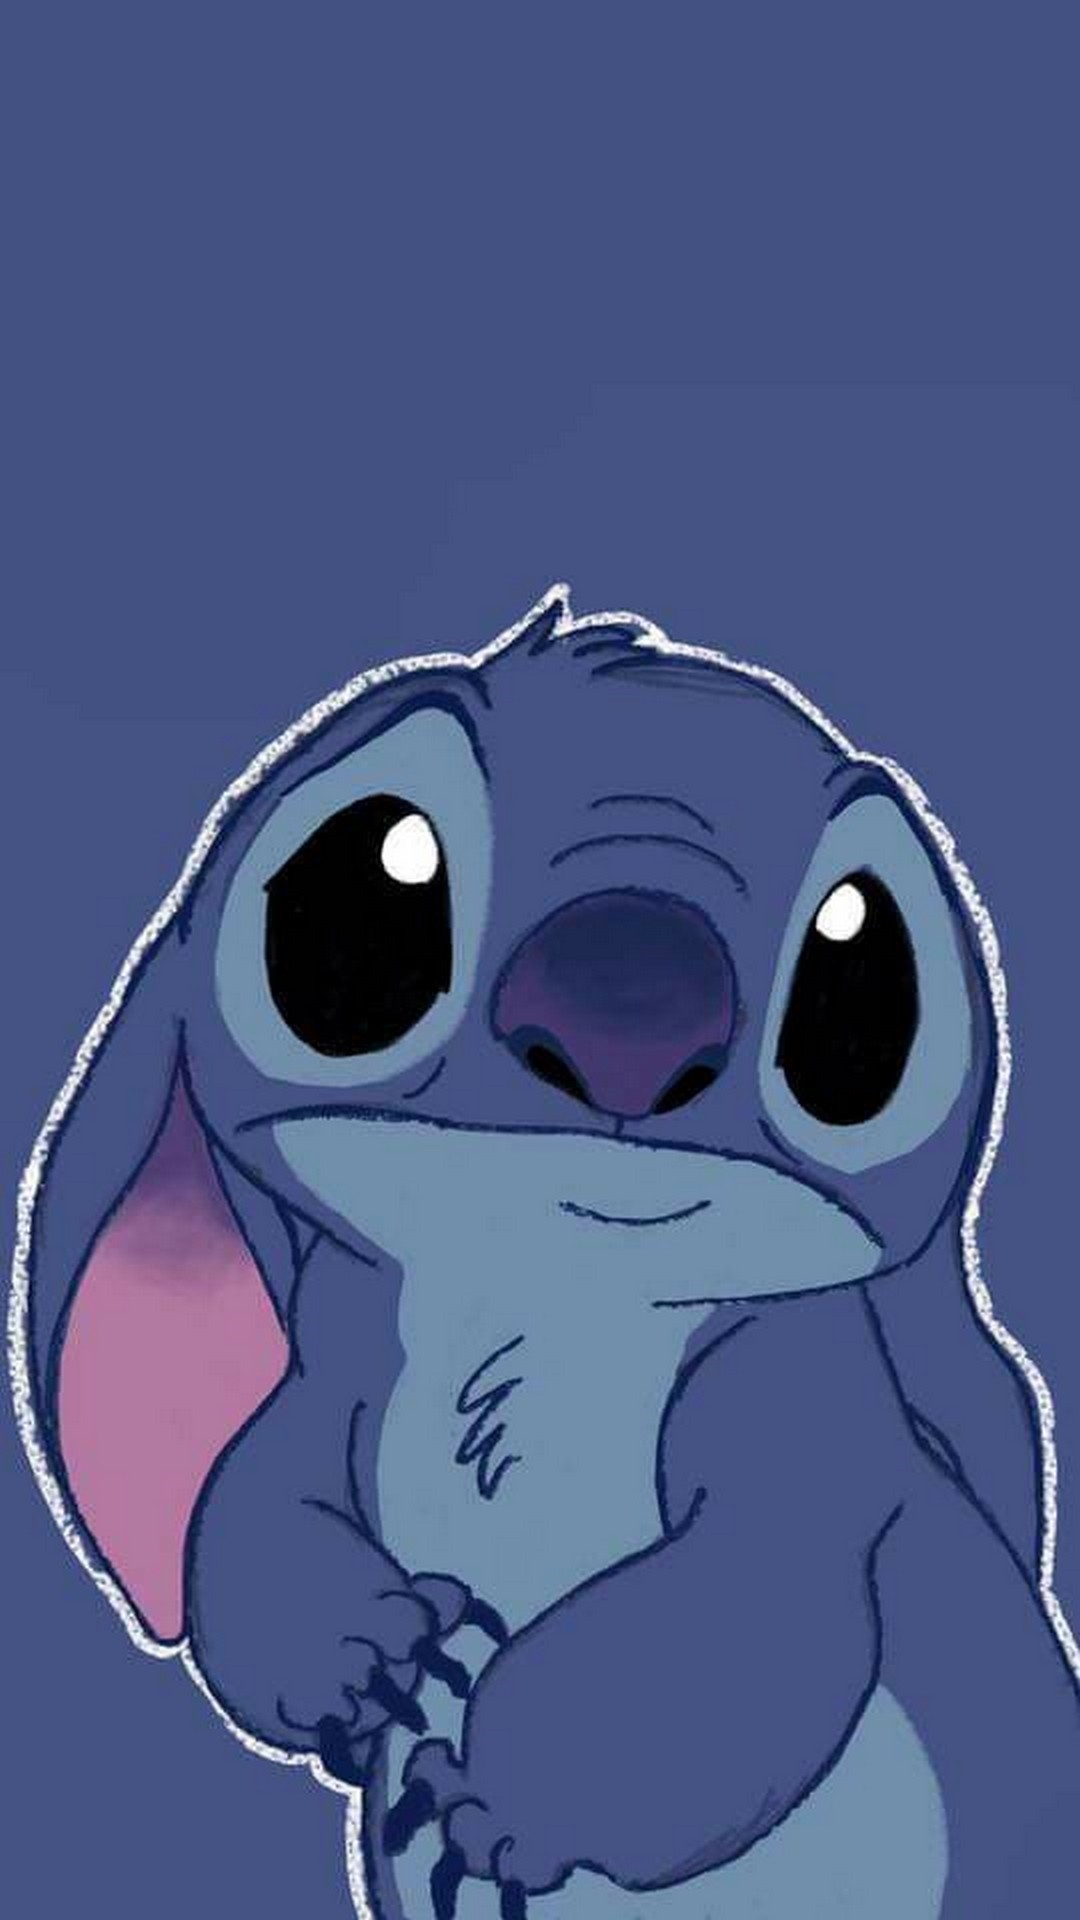 Stitch hd wallpaper for iphone